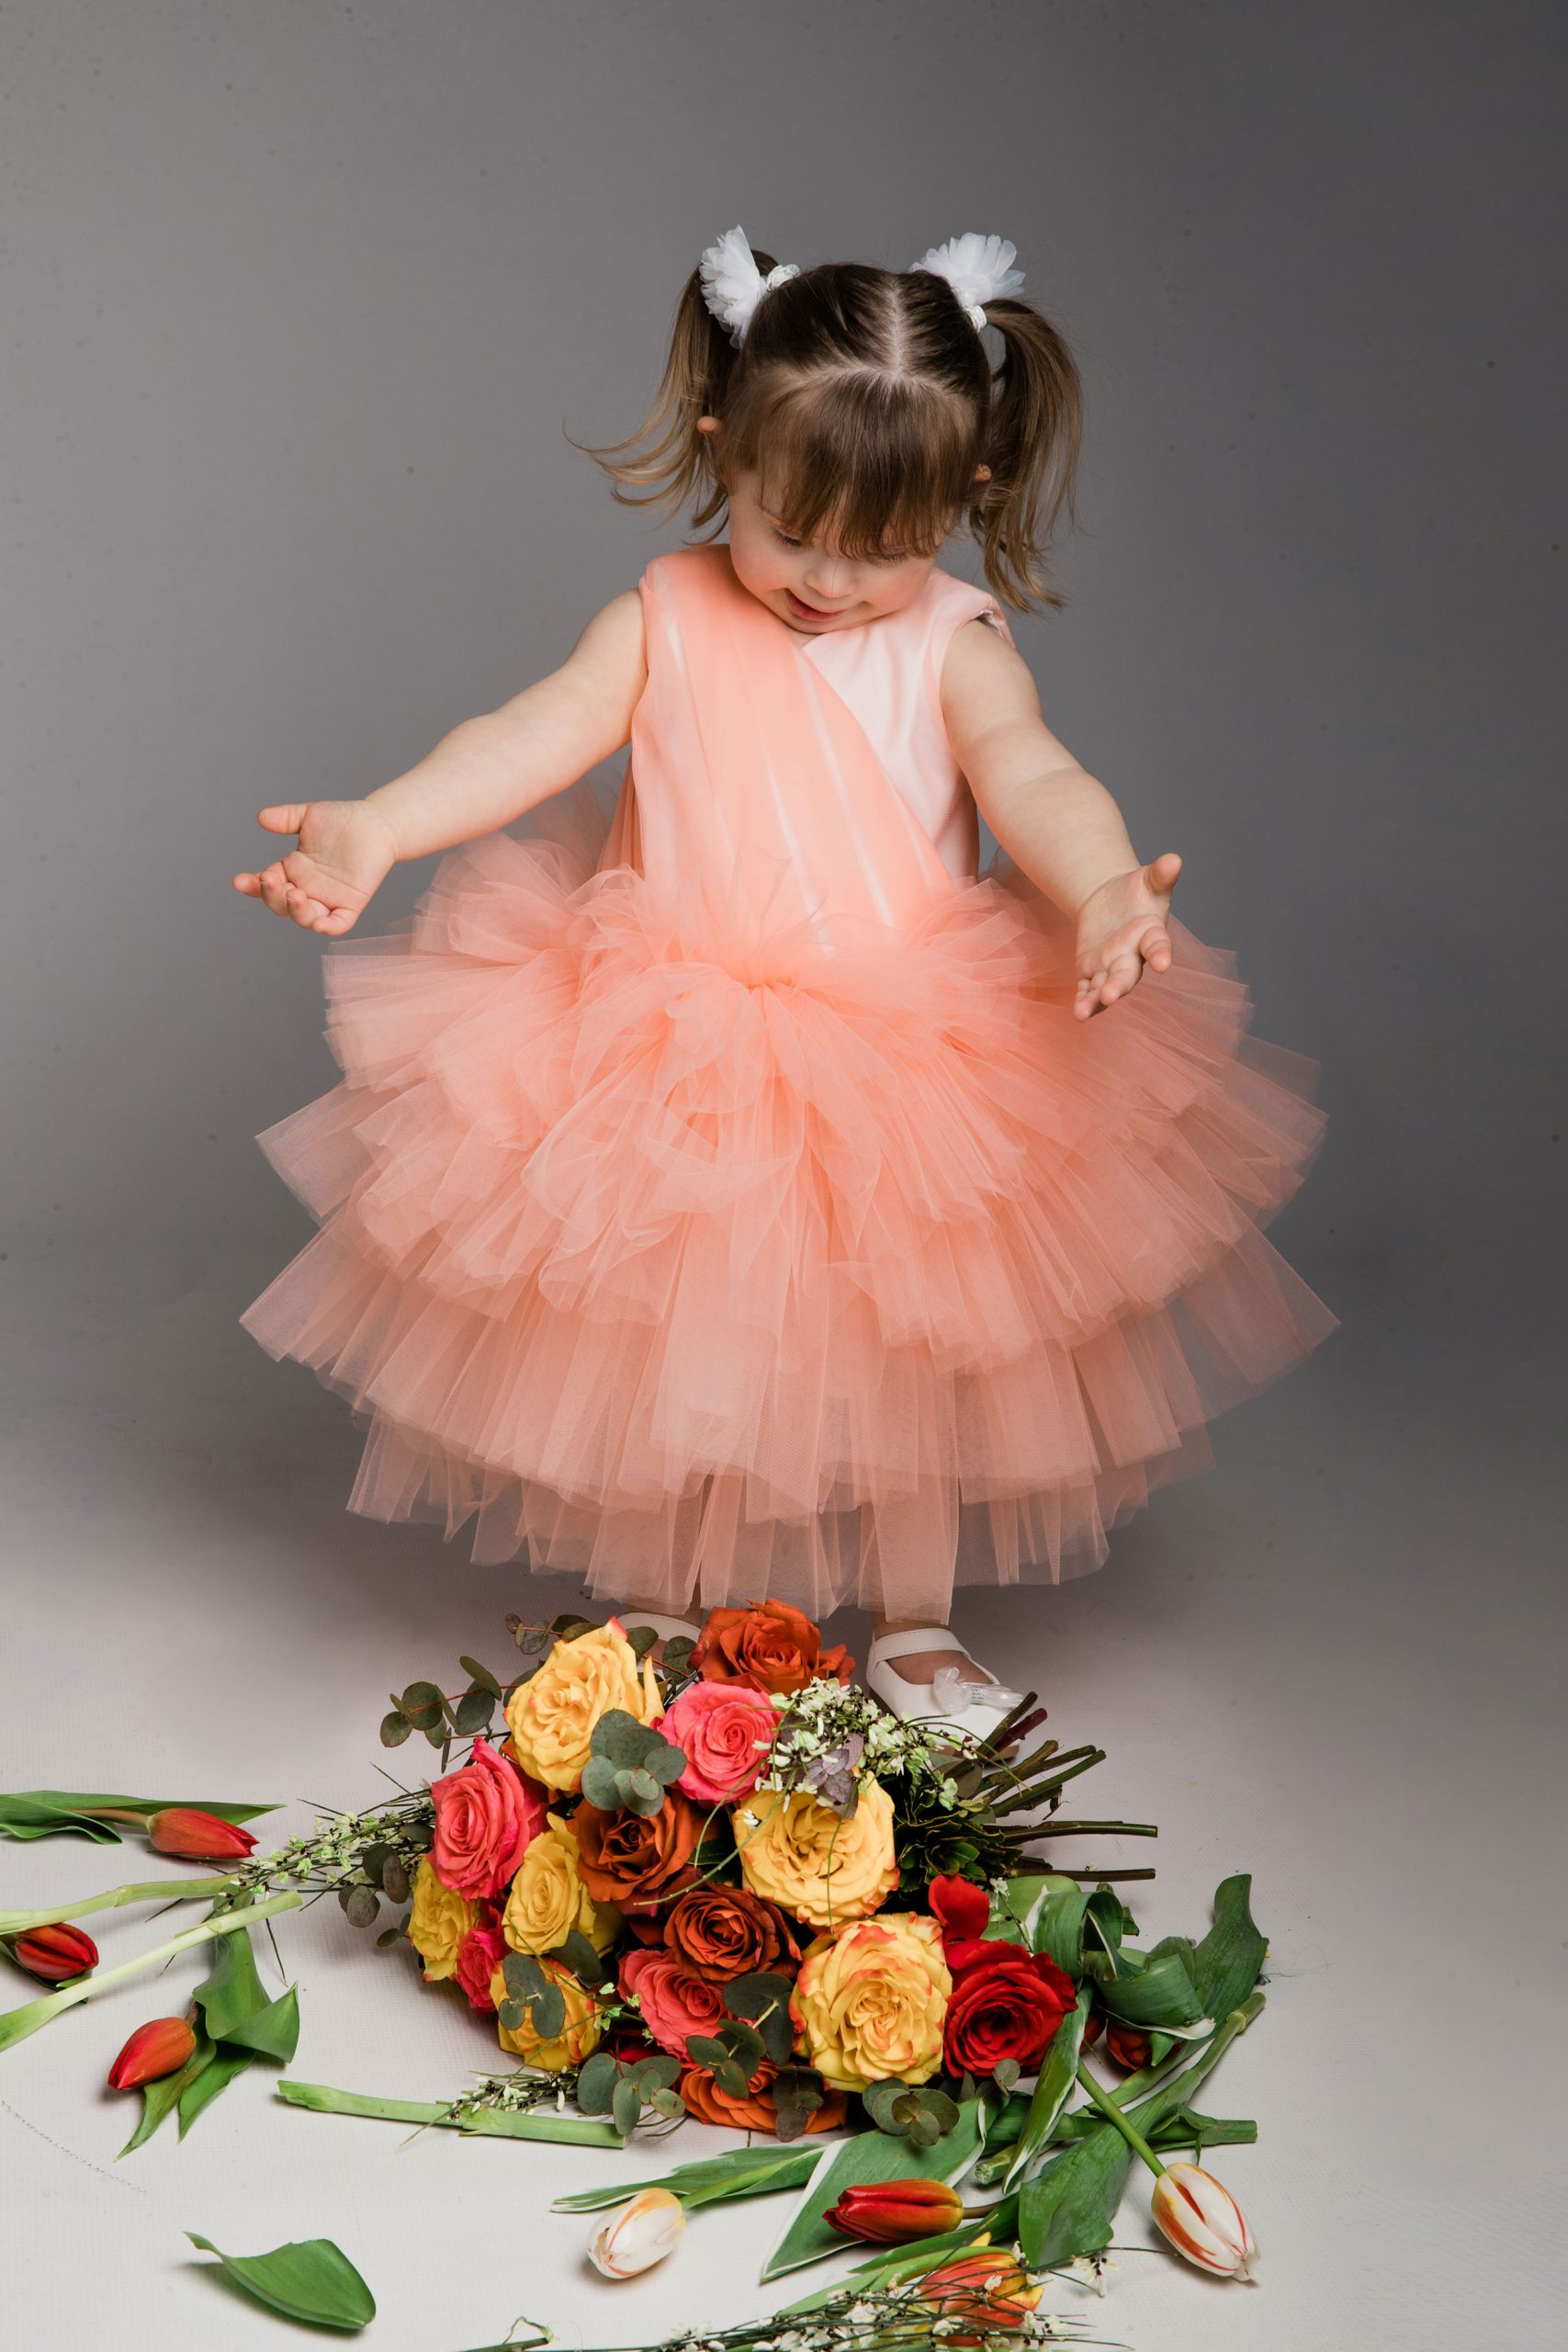 Down Syndrome Photography